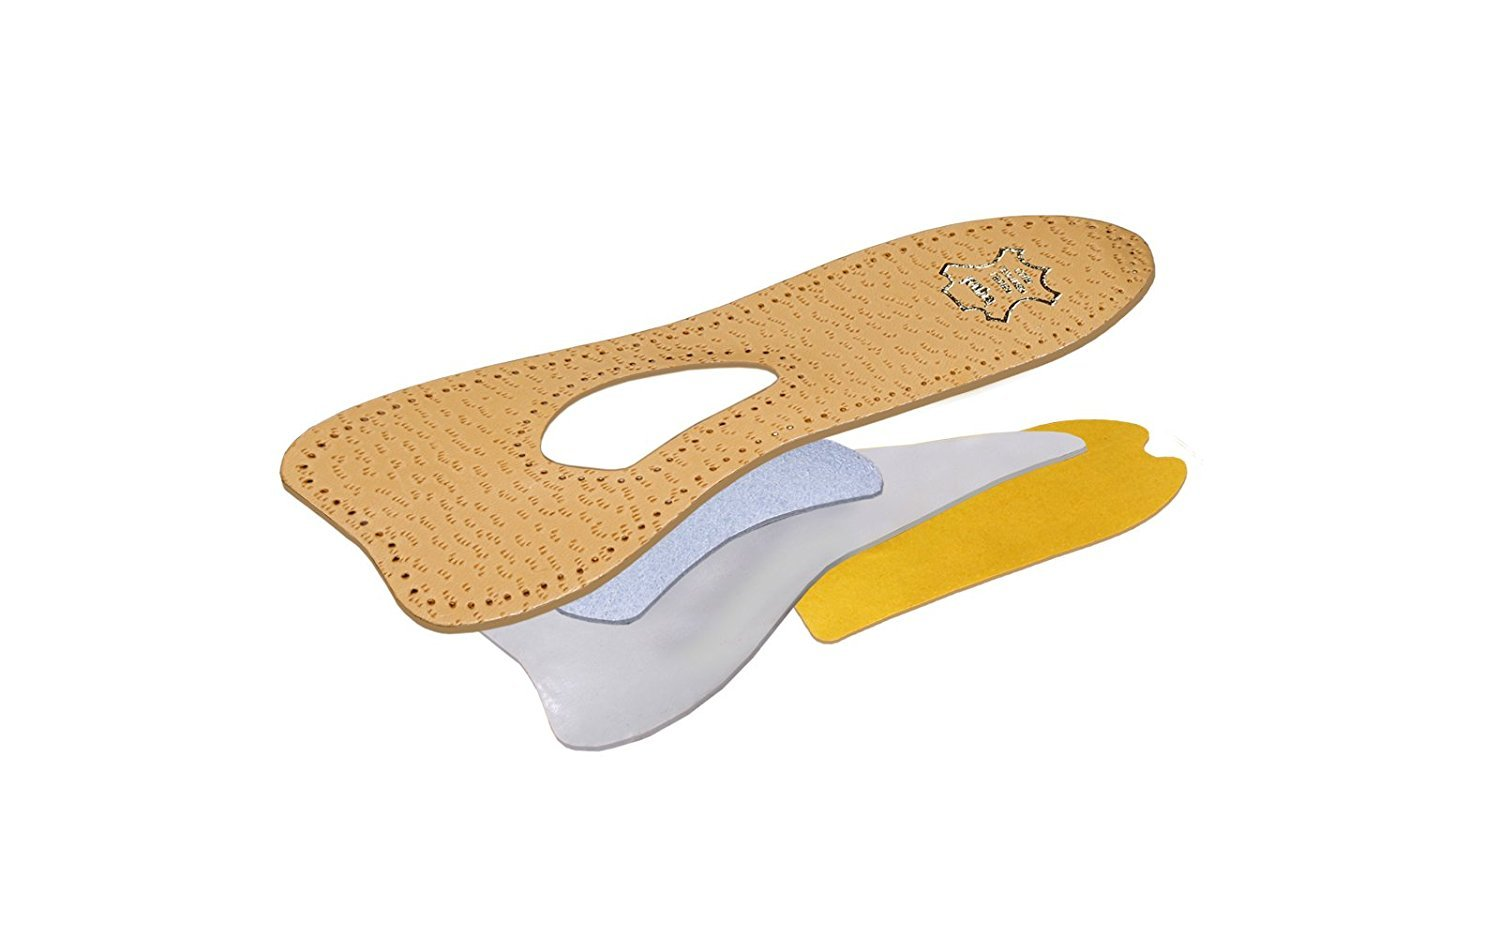 Orthotic 3/4 Leather Insoles for Pumps/heels with Arch Support, Kaps Ballet, All Sizes (Women / 7 US / 38 EUR / 5 UK) by Kaps